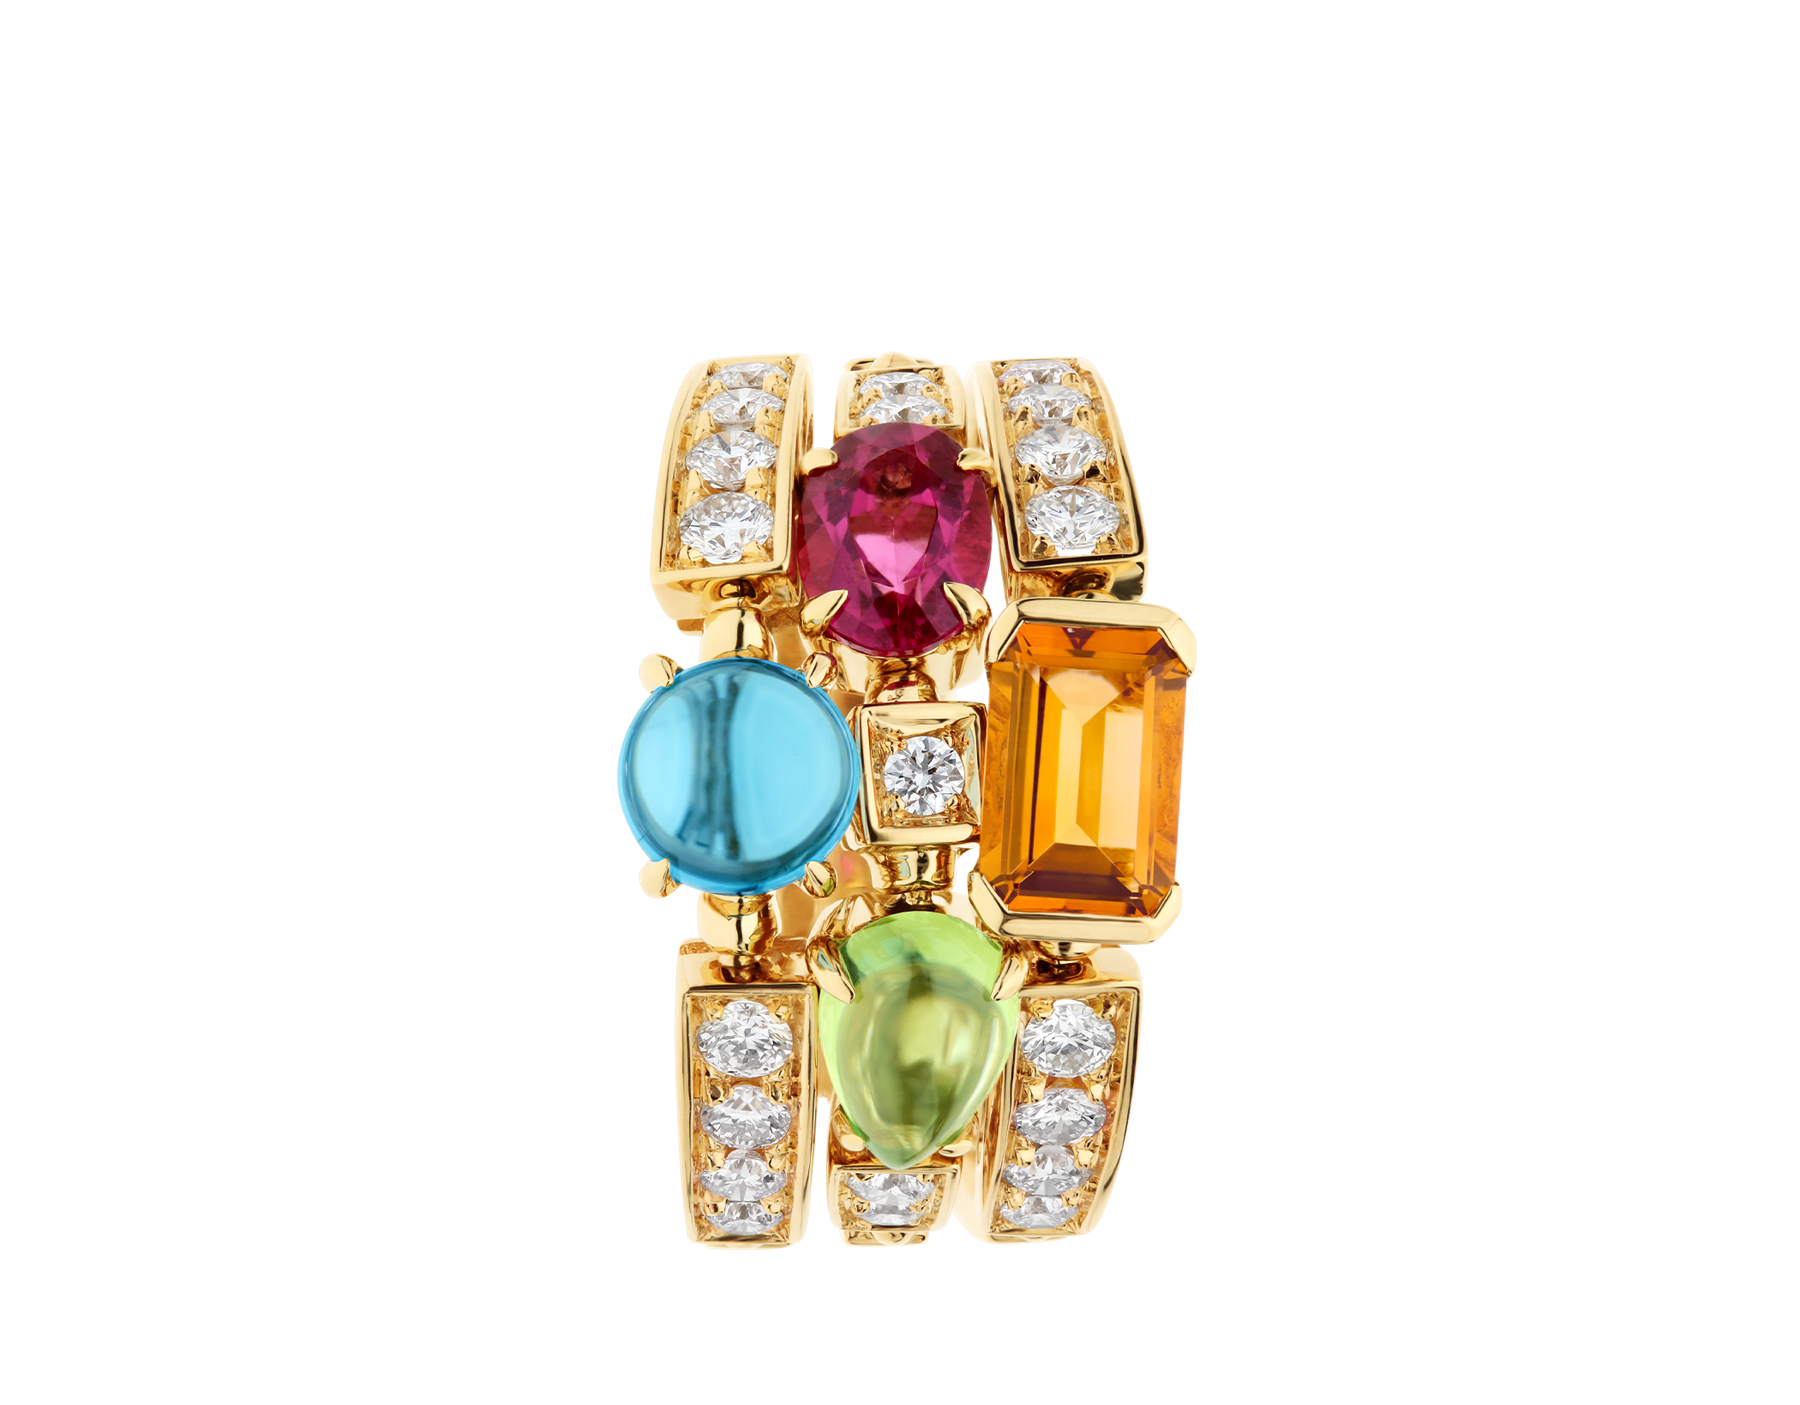 Colore three-band 18 kt yellow gold ring set with pink tourmaline, peridot, citrine quartz, blue topaz and pavé diamonds AN852171 image 2